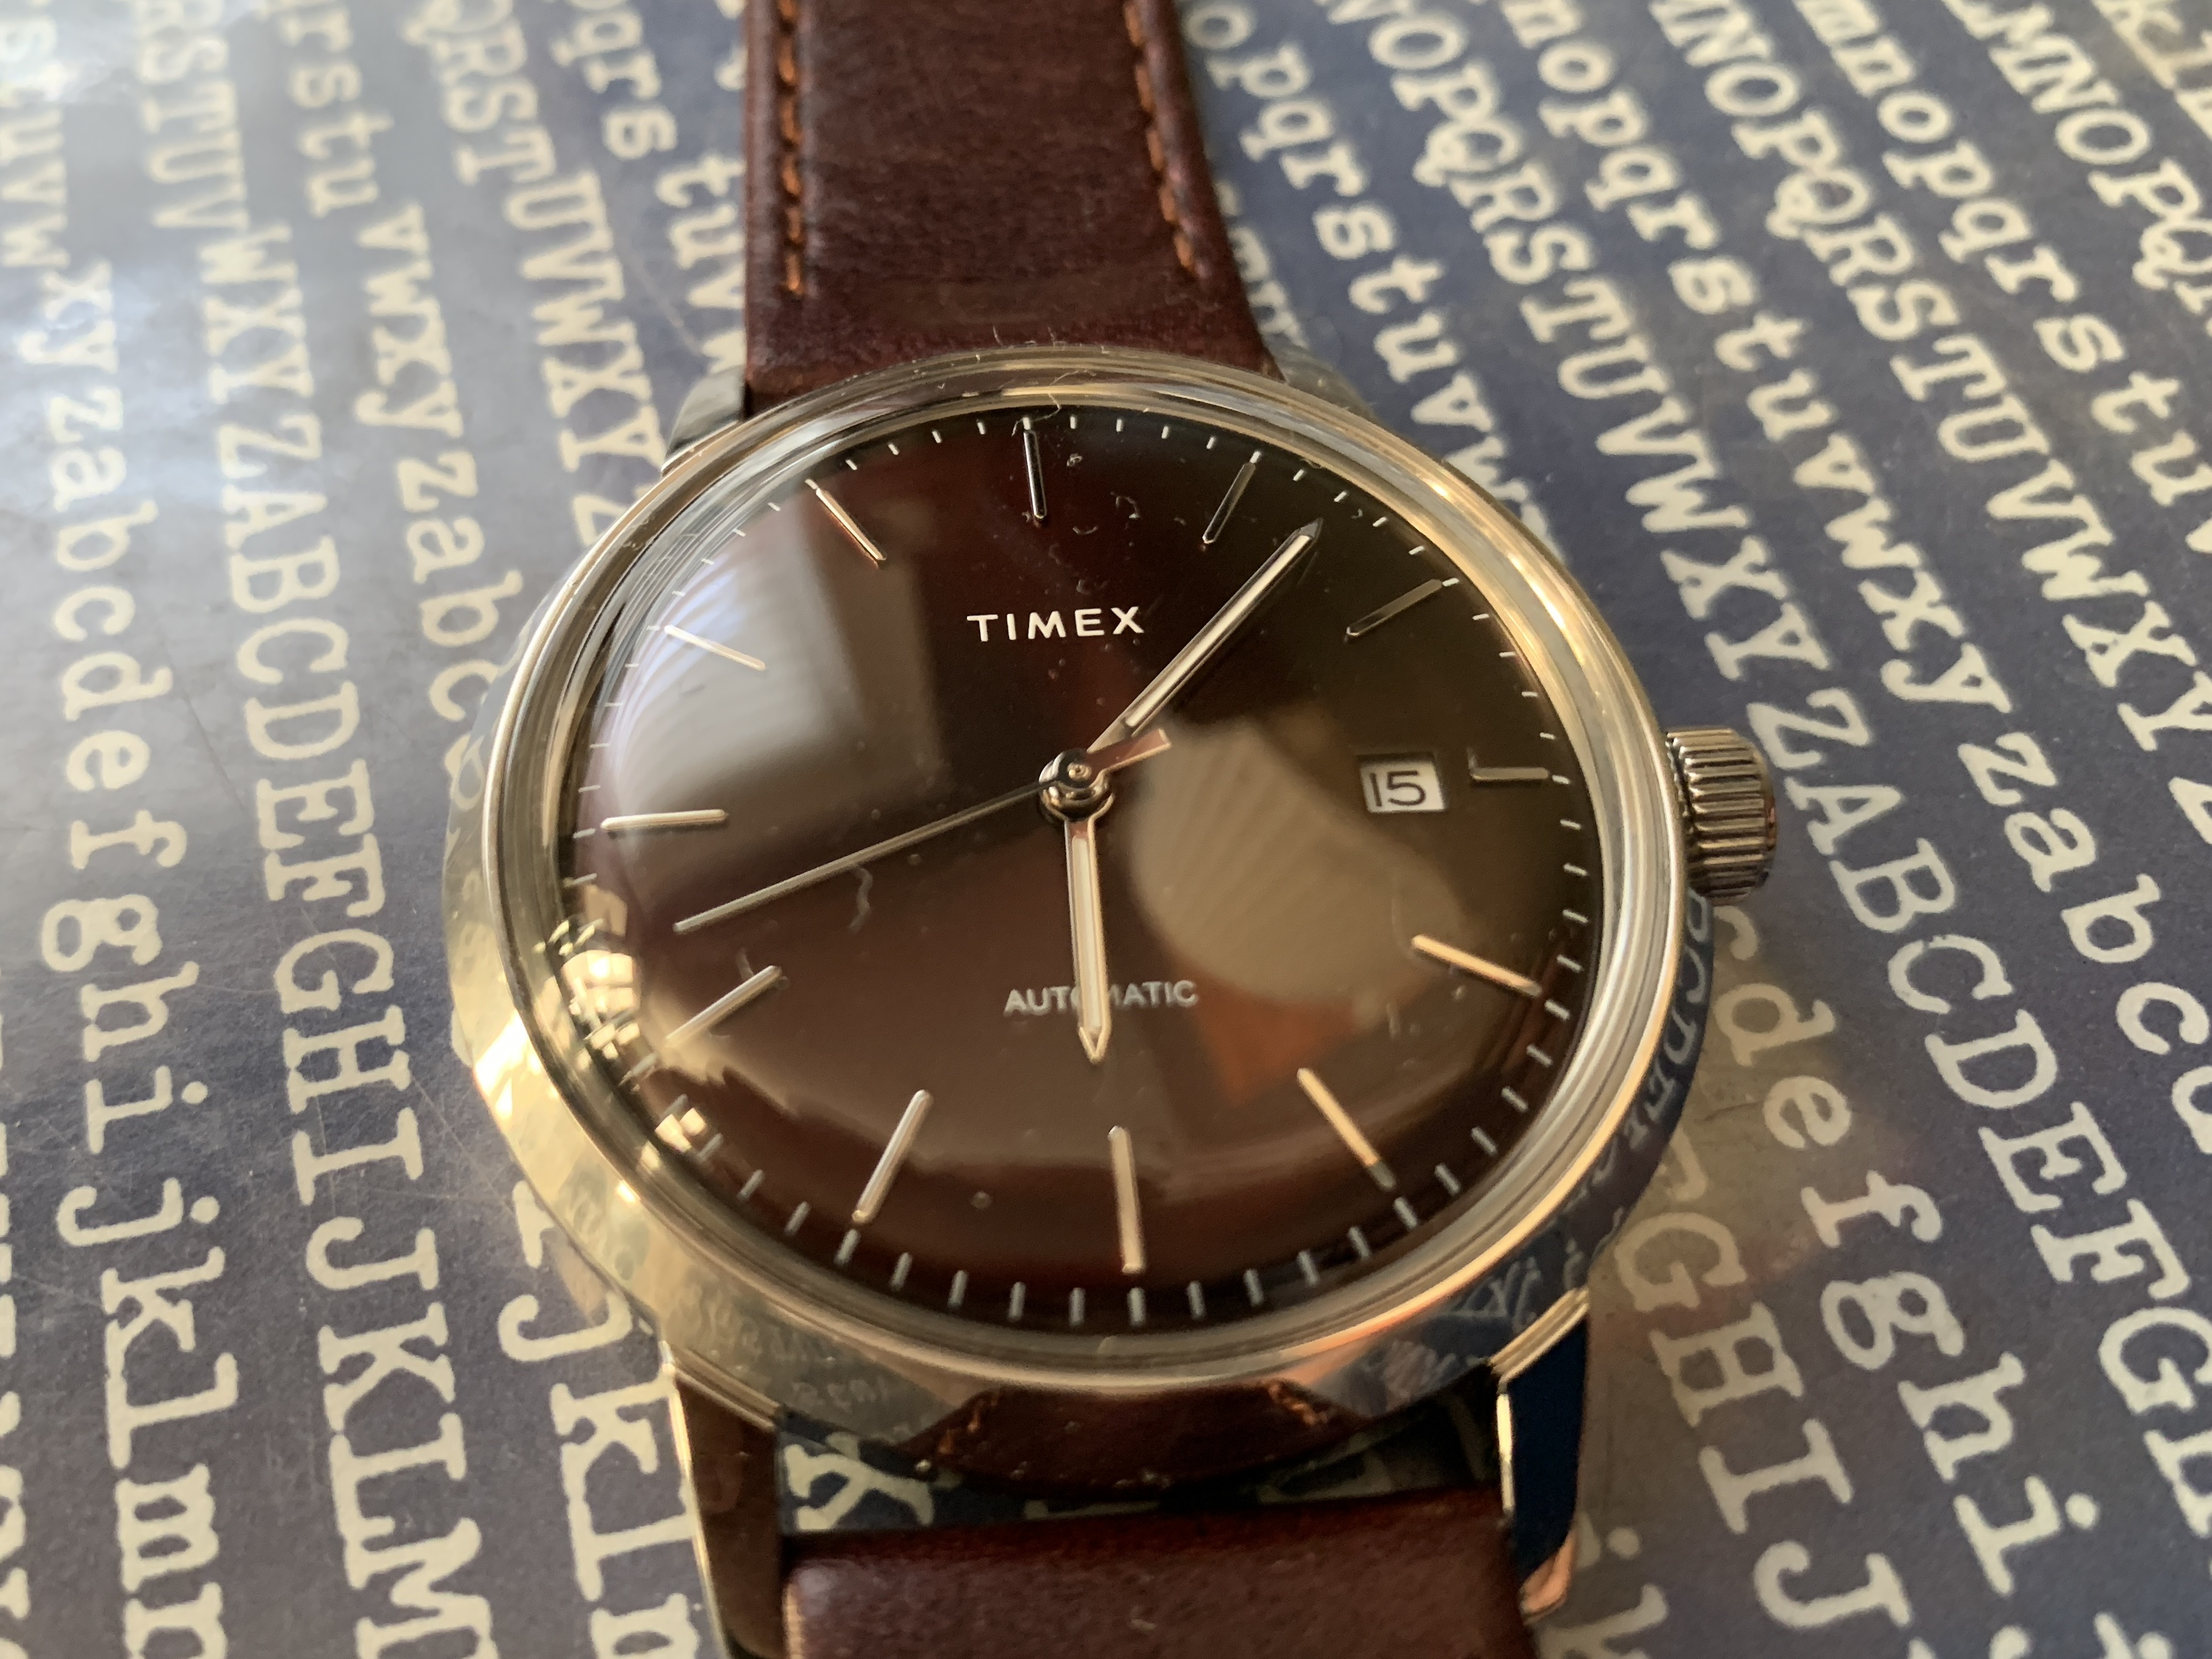 Timex catalog numbers